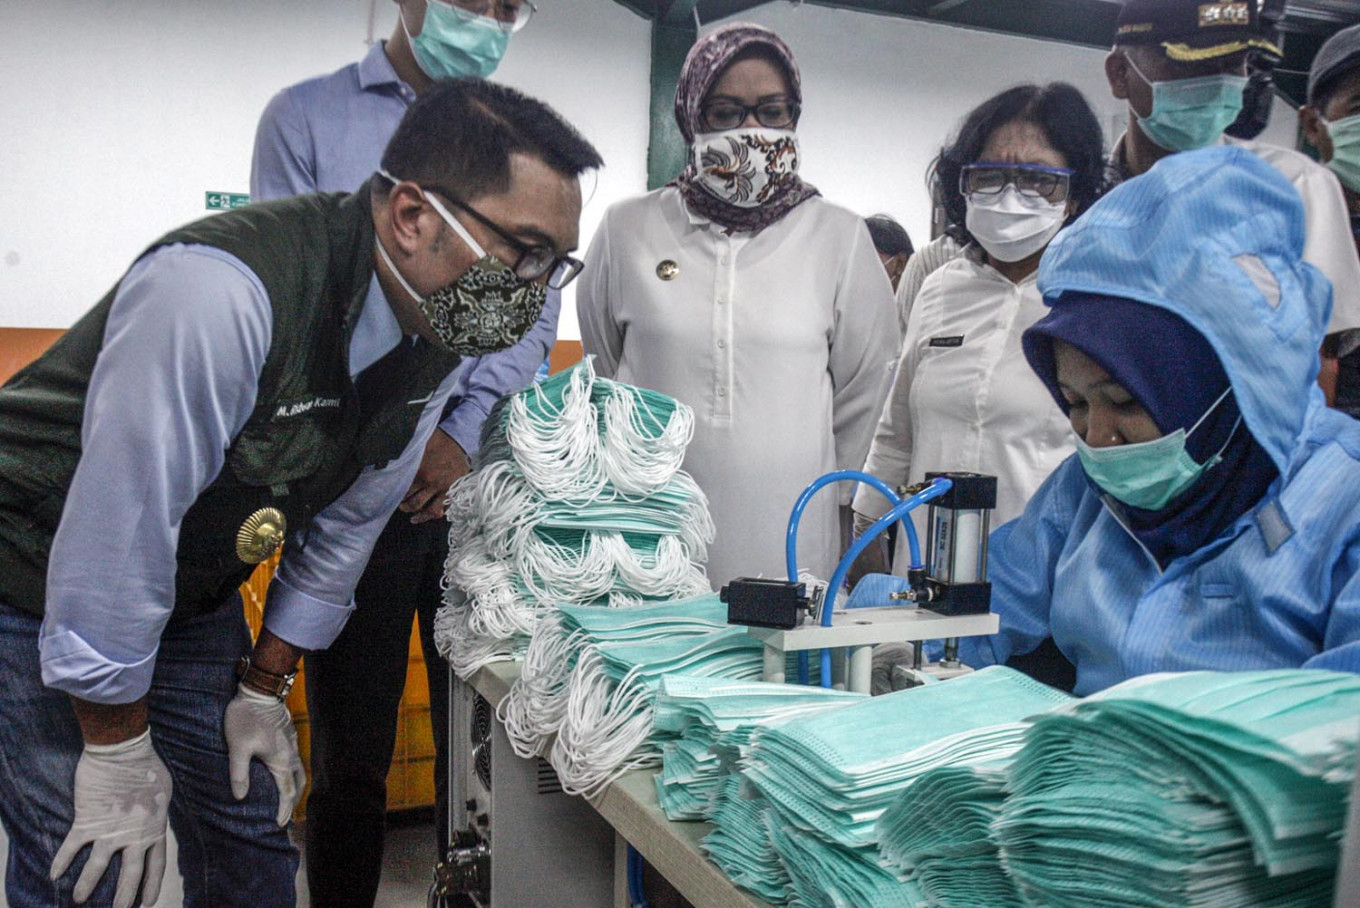 West Java to ease restrictions amid signs of decline in new COVID-19 cases